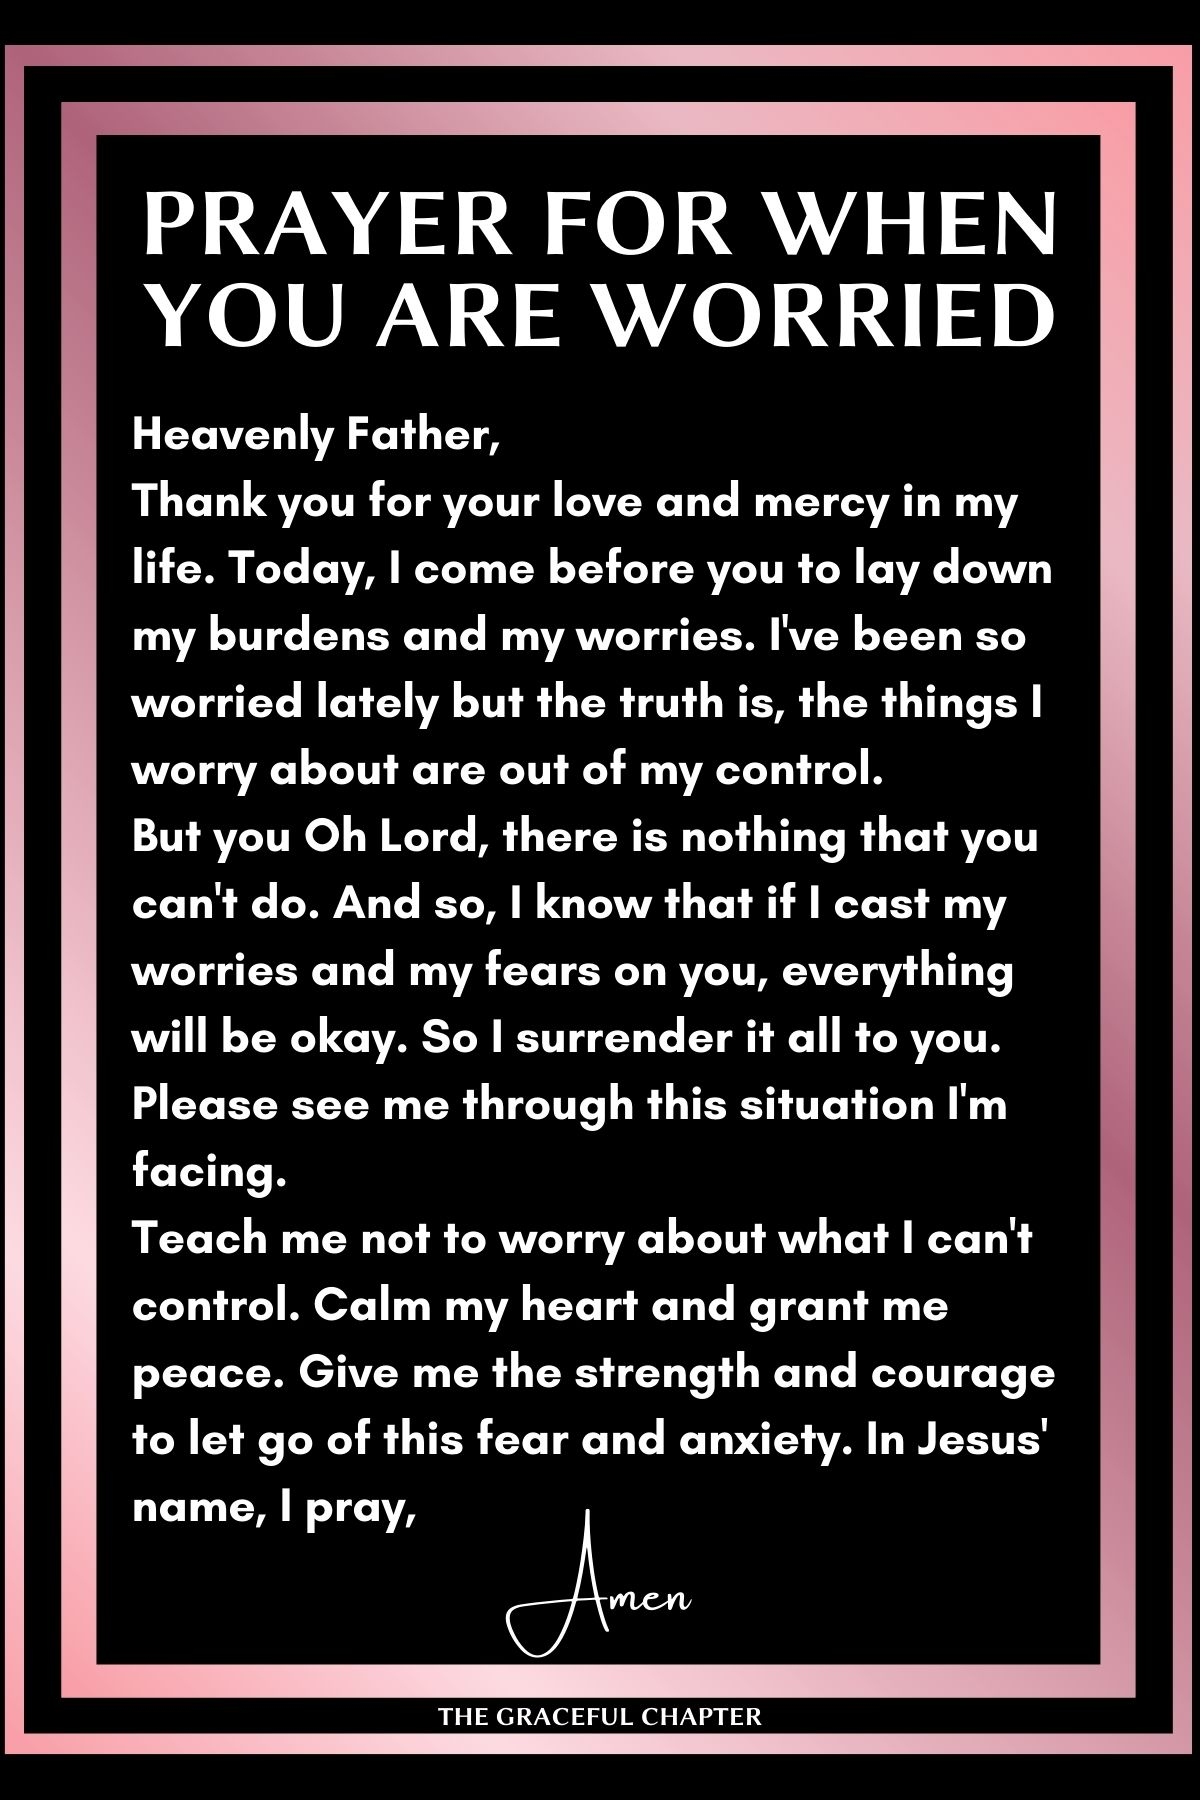 Prayer for when you are worried